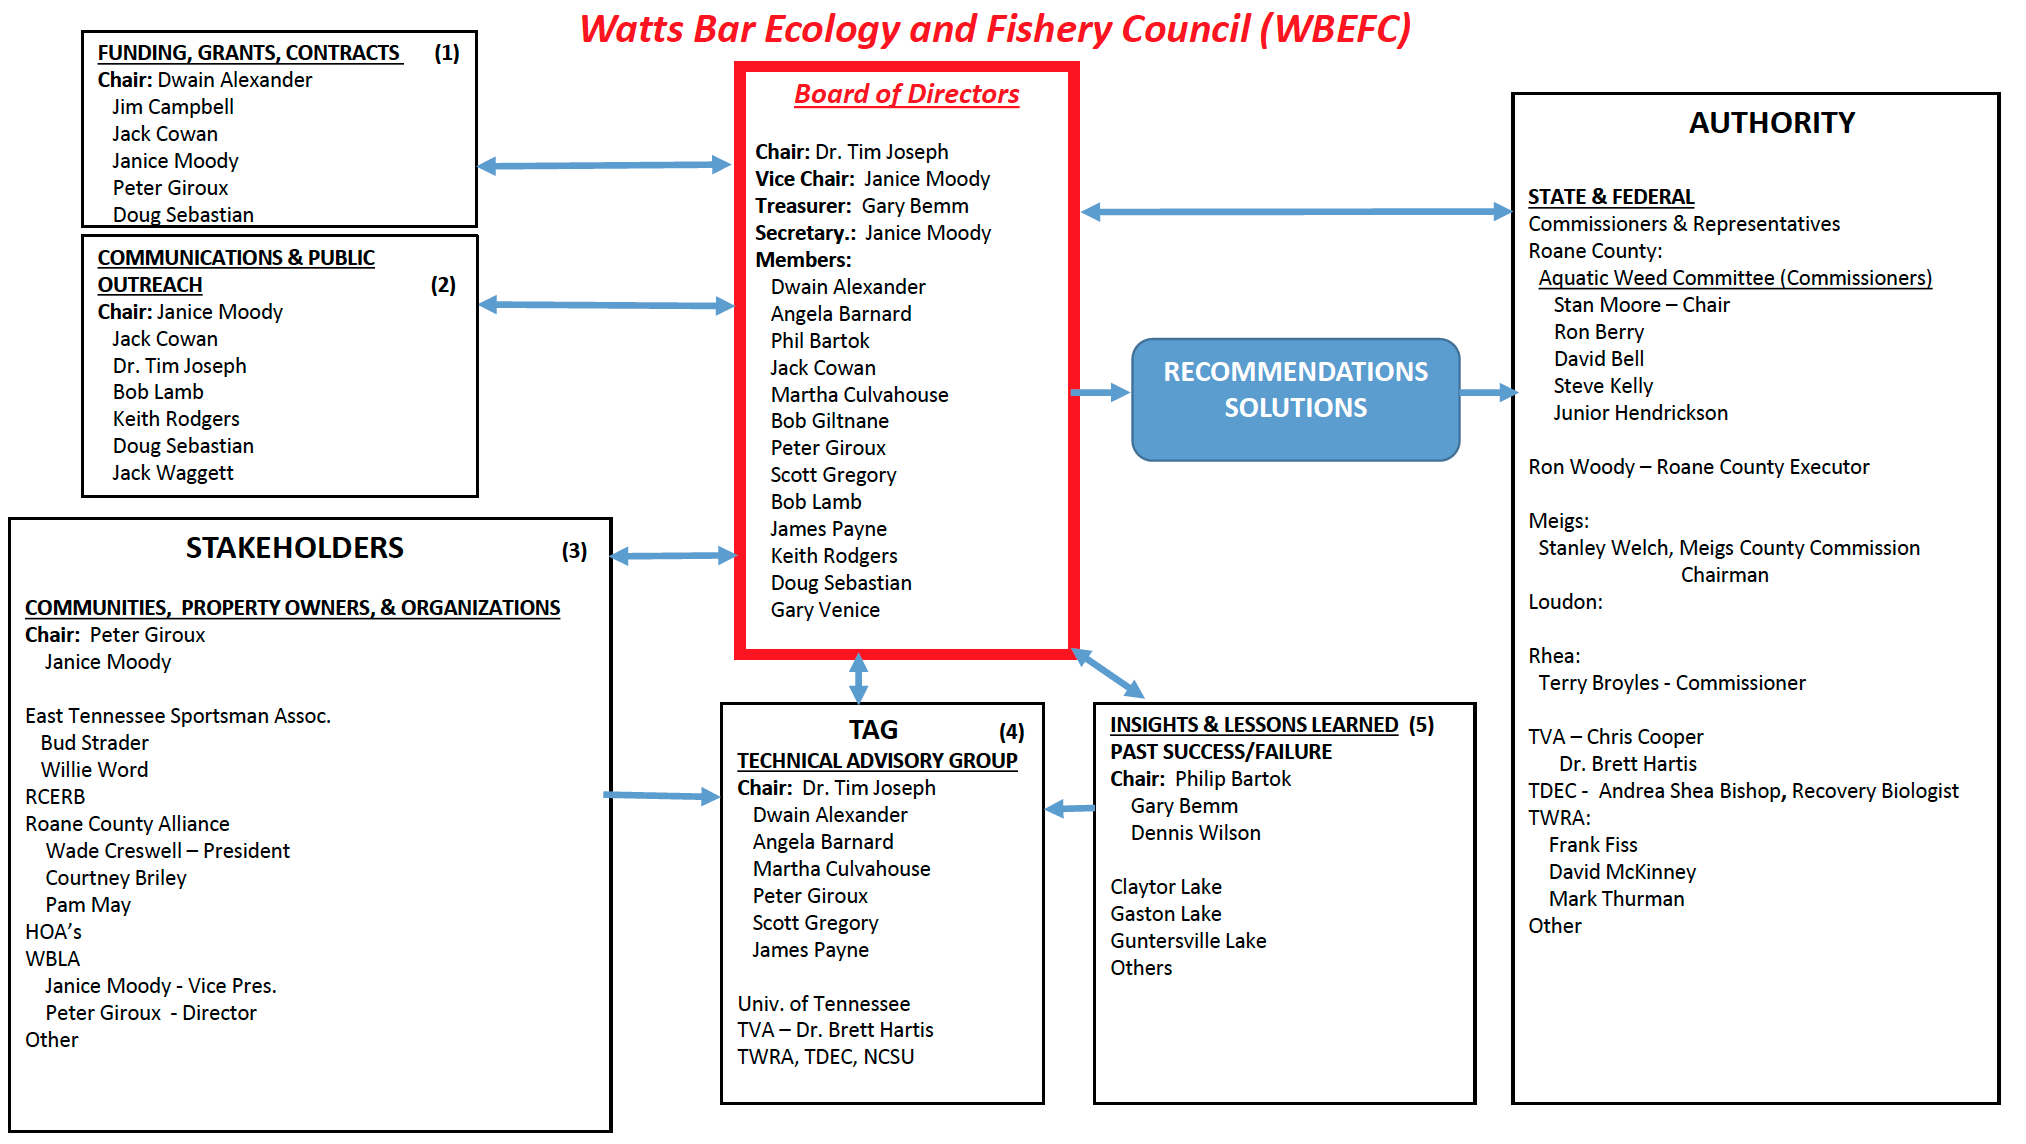 Fishery Council